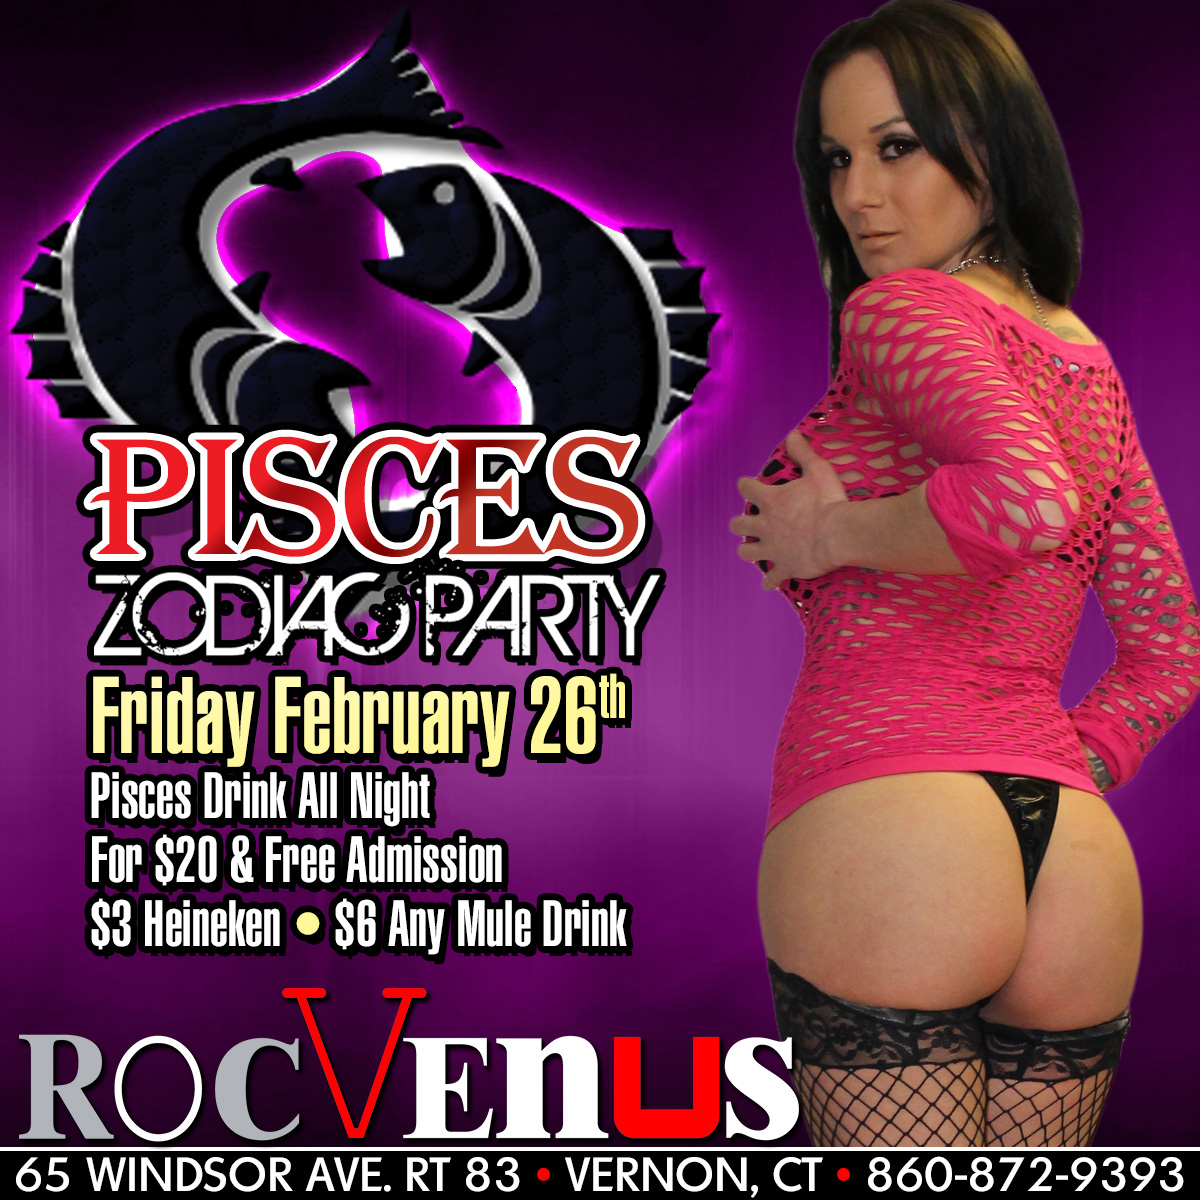 Pisces Zodiac Party | RocVenus Strip Club Connecticut